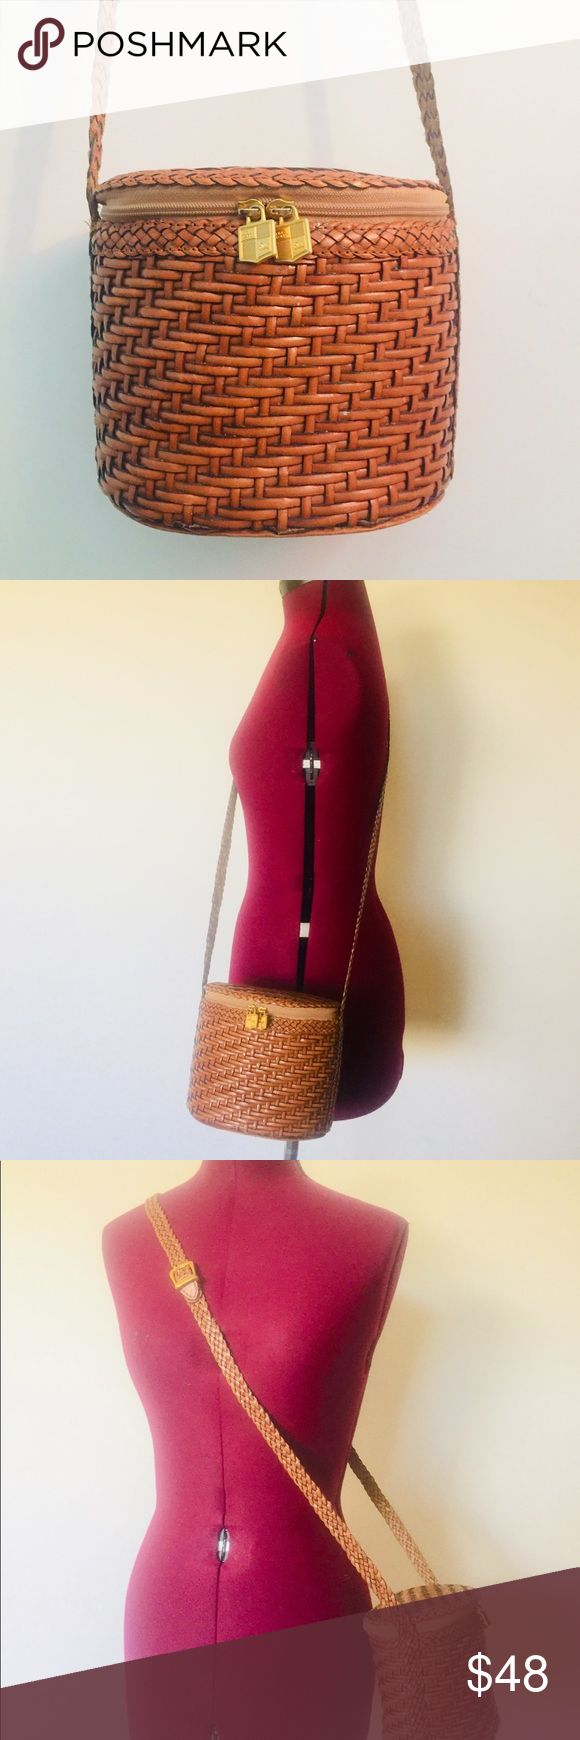 """Vintage Weaved Leather Cross Body Hand Bag Purse cognac weaved leather crossbody bag made in Brazil by Lisa Lauren.  The top of the bag is a pouch style with a zip around opening, the interior is lined in soft canvas fabric, it's one  open compartment and has one zippered pocket.  It has a long shoulder strap in braided leather and can be worn as a shoulder or cross body  Across: 9"""" Height: 6"""" Depth: 4.5"""" taken at bottom Strap Drop: 23"""" from the center of the strap to the top of the bag at…"""